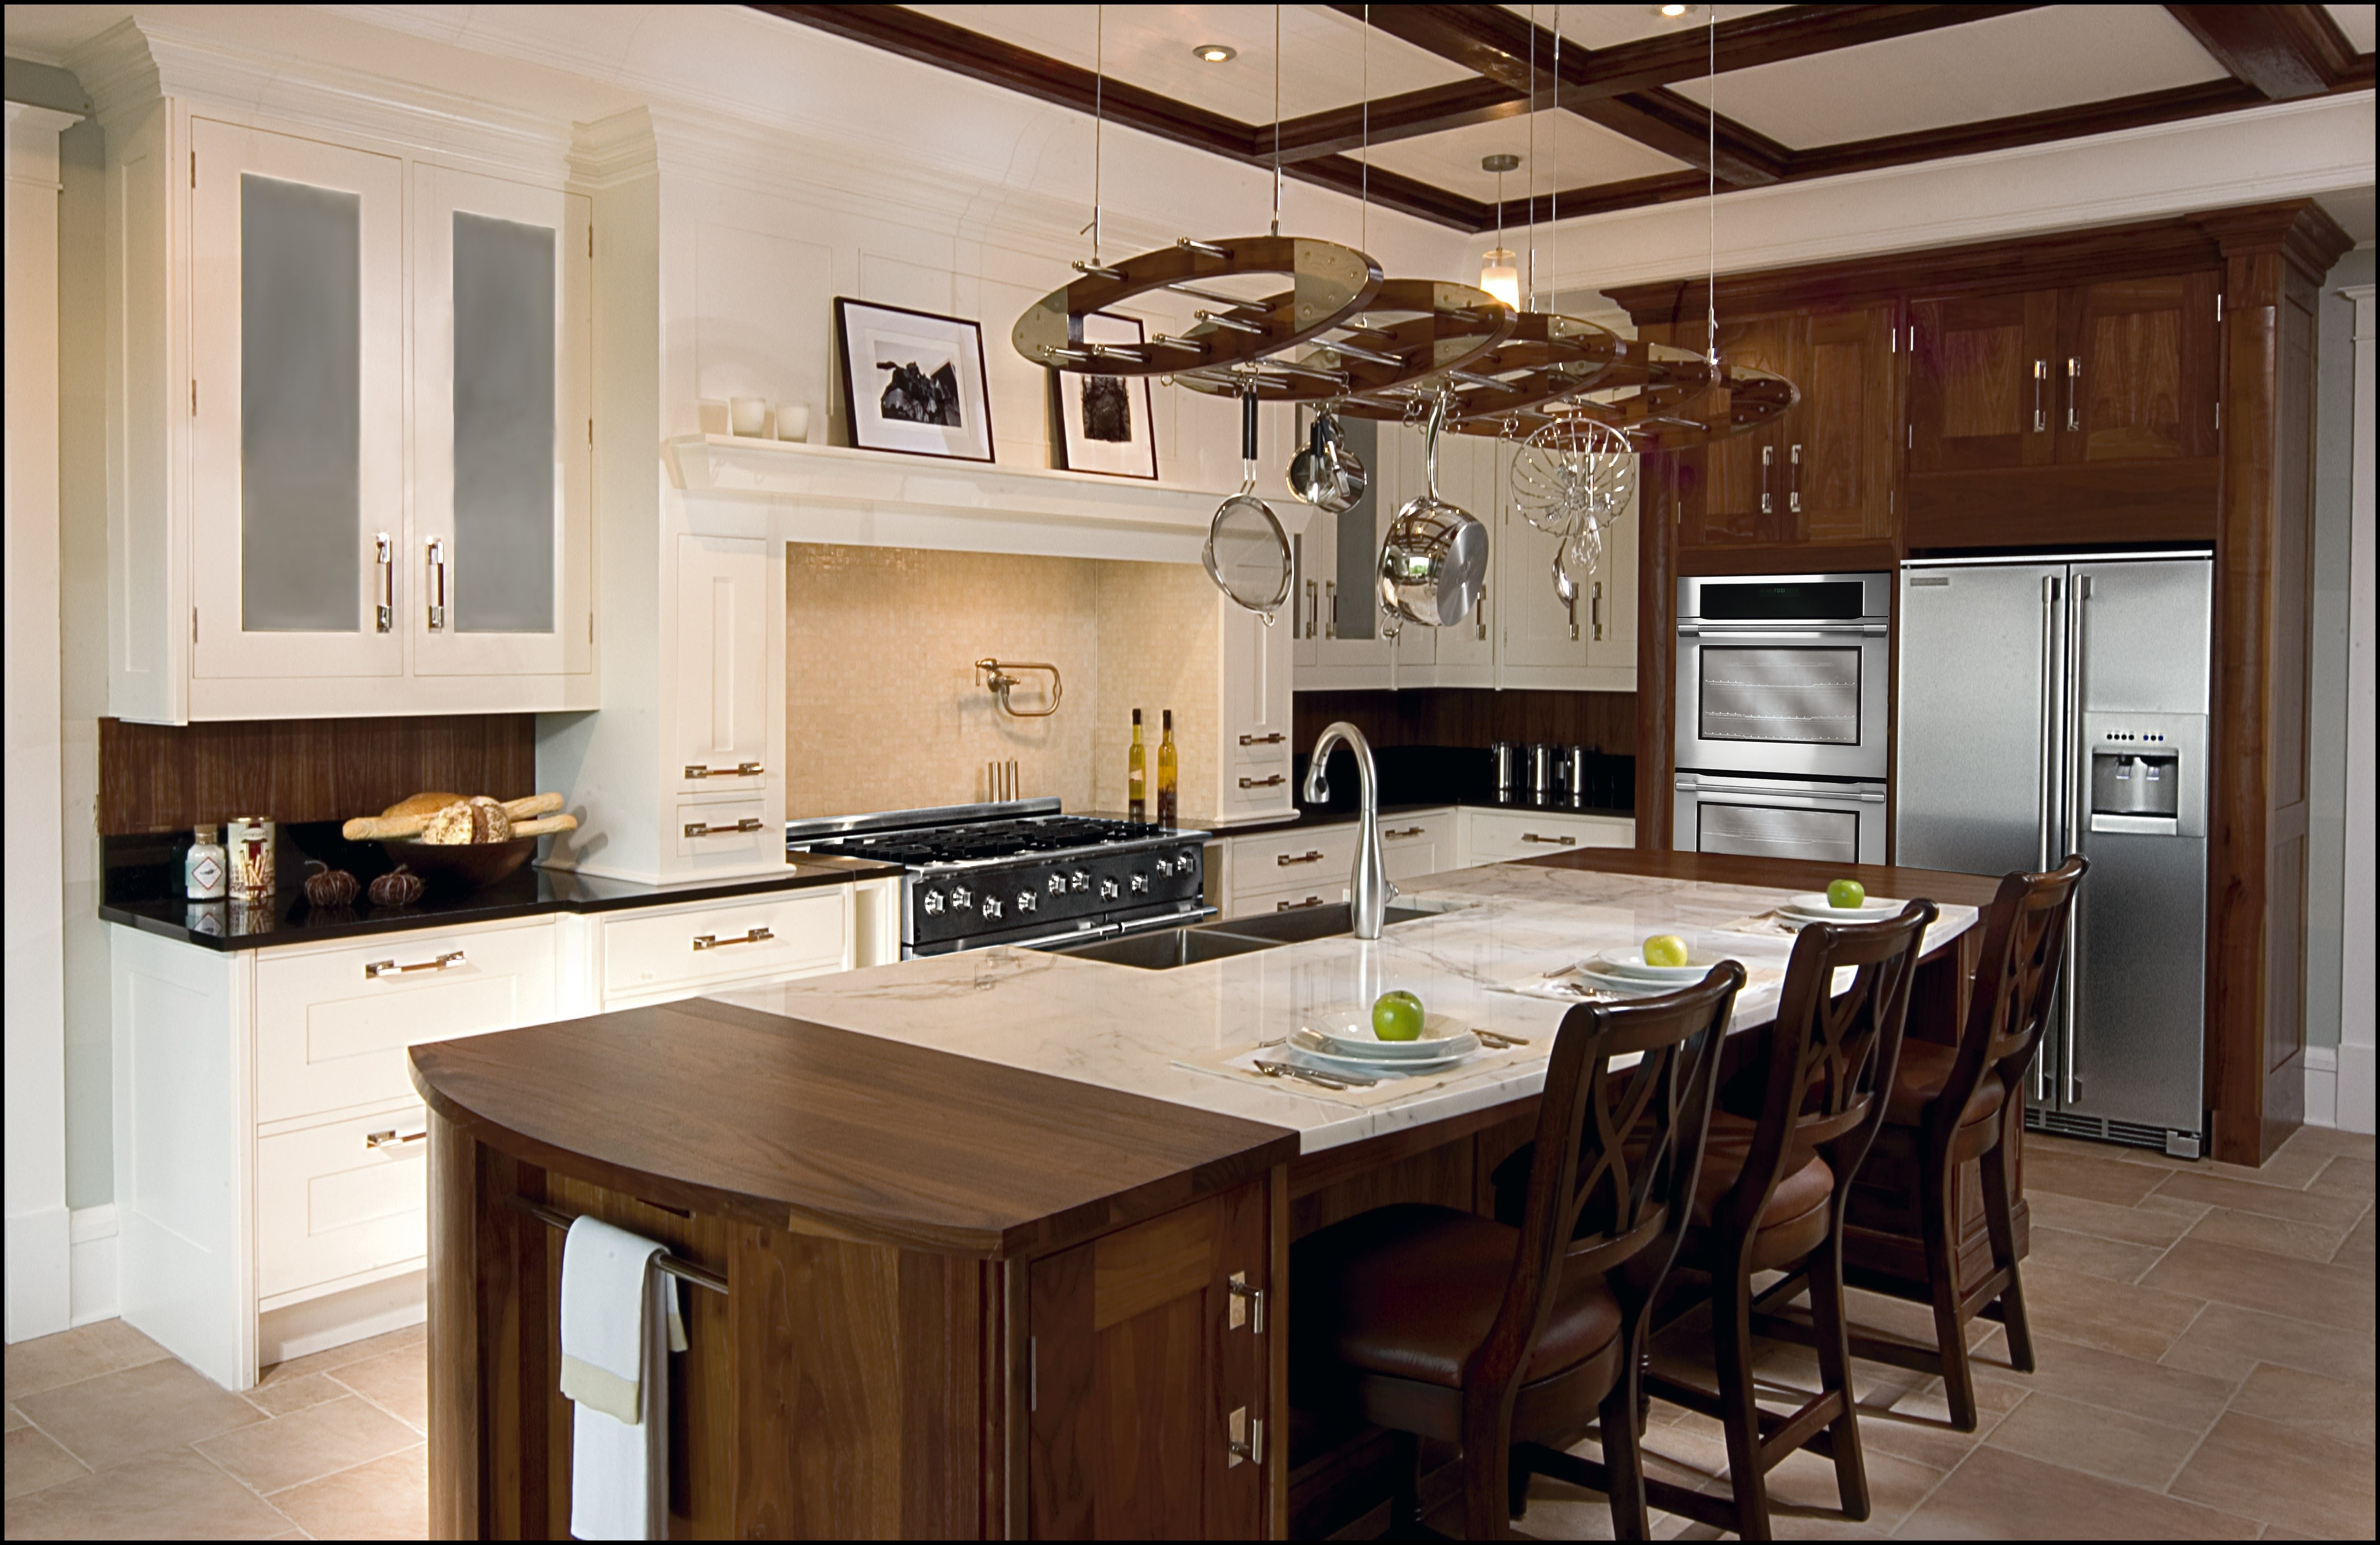 enticing-kitchen-luxury-country-design-ideas-with-dark-brown-wooden-dining-table-using-cream-marble-pedestal-countertop-be-equipped-chrome-stainless-sink-thereon-and-white-wooden-floating-shelves-cabi